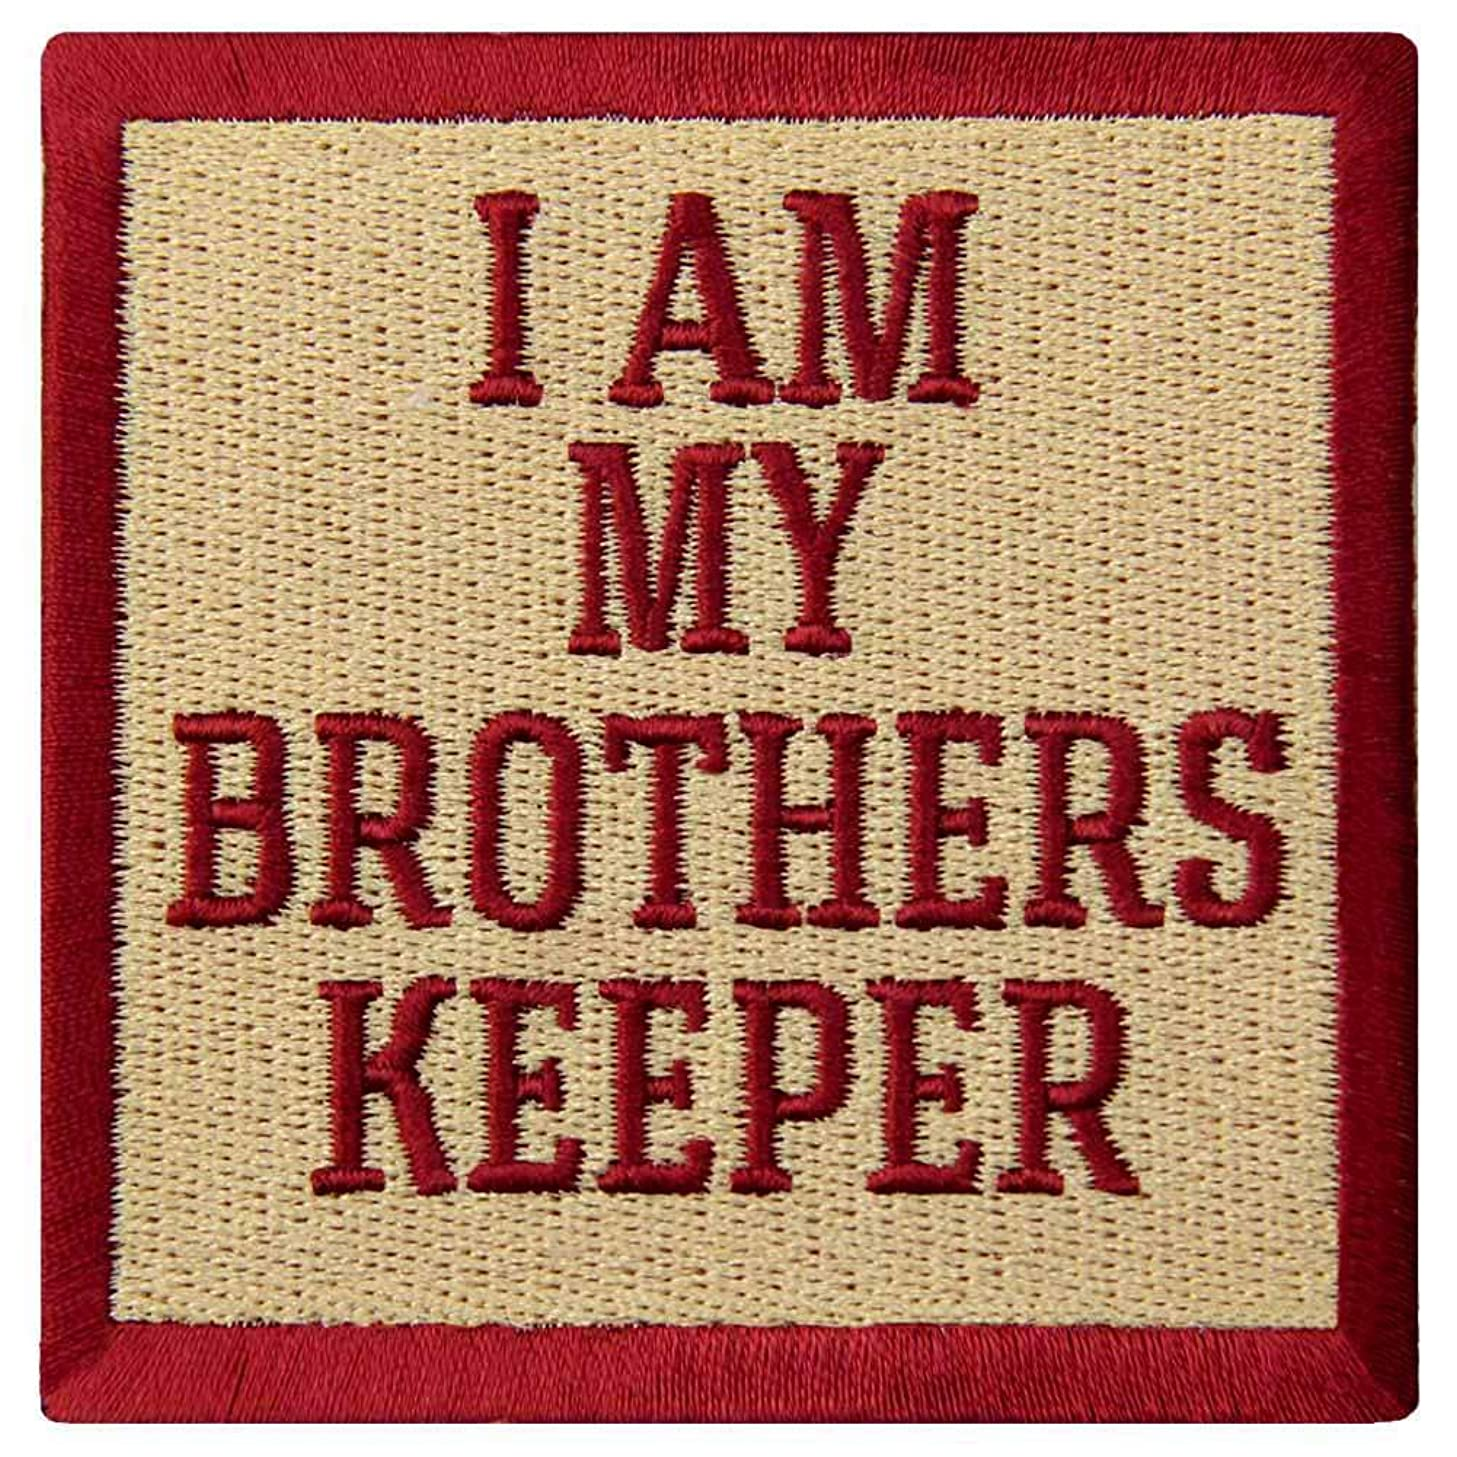 I Am My Brothers Keeper Patch Embroidered Funny Tactical Badge Biker Applique Iron On Sew On Emblem